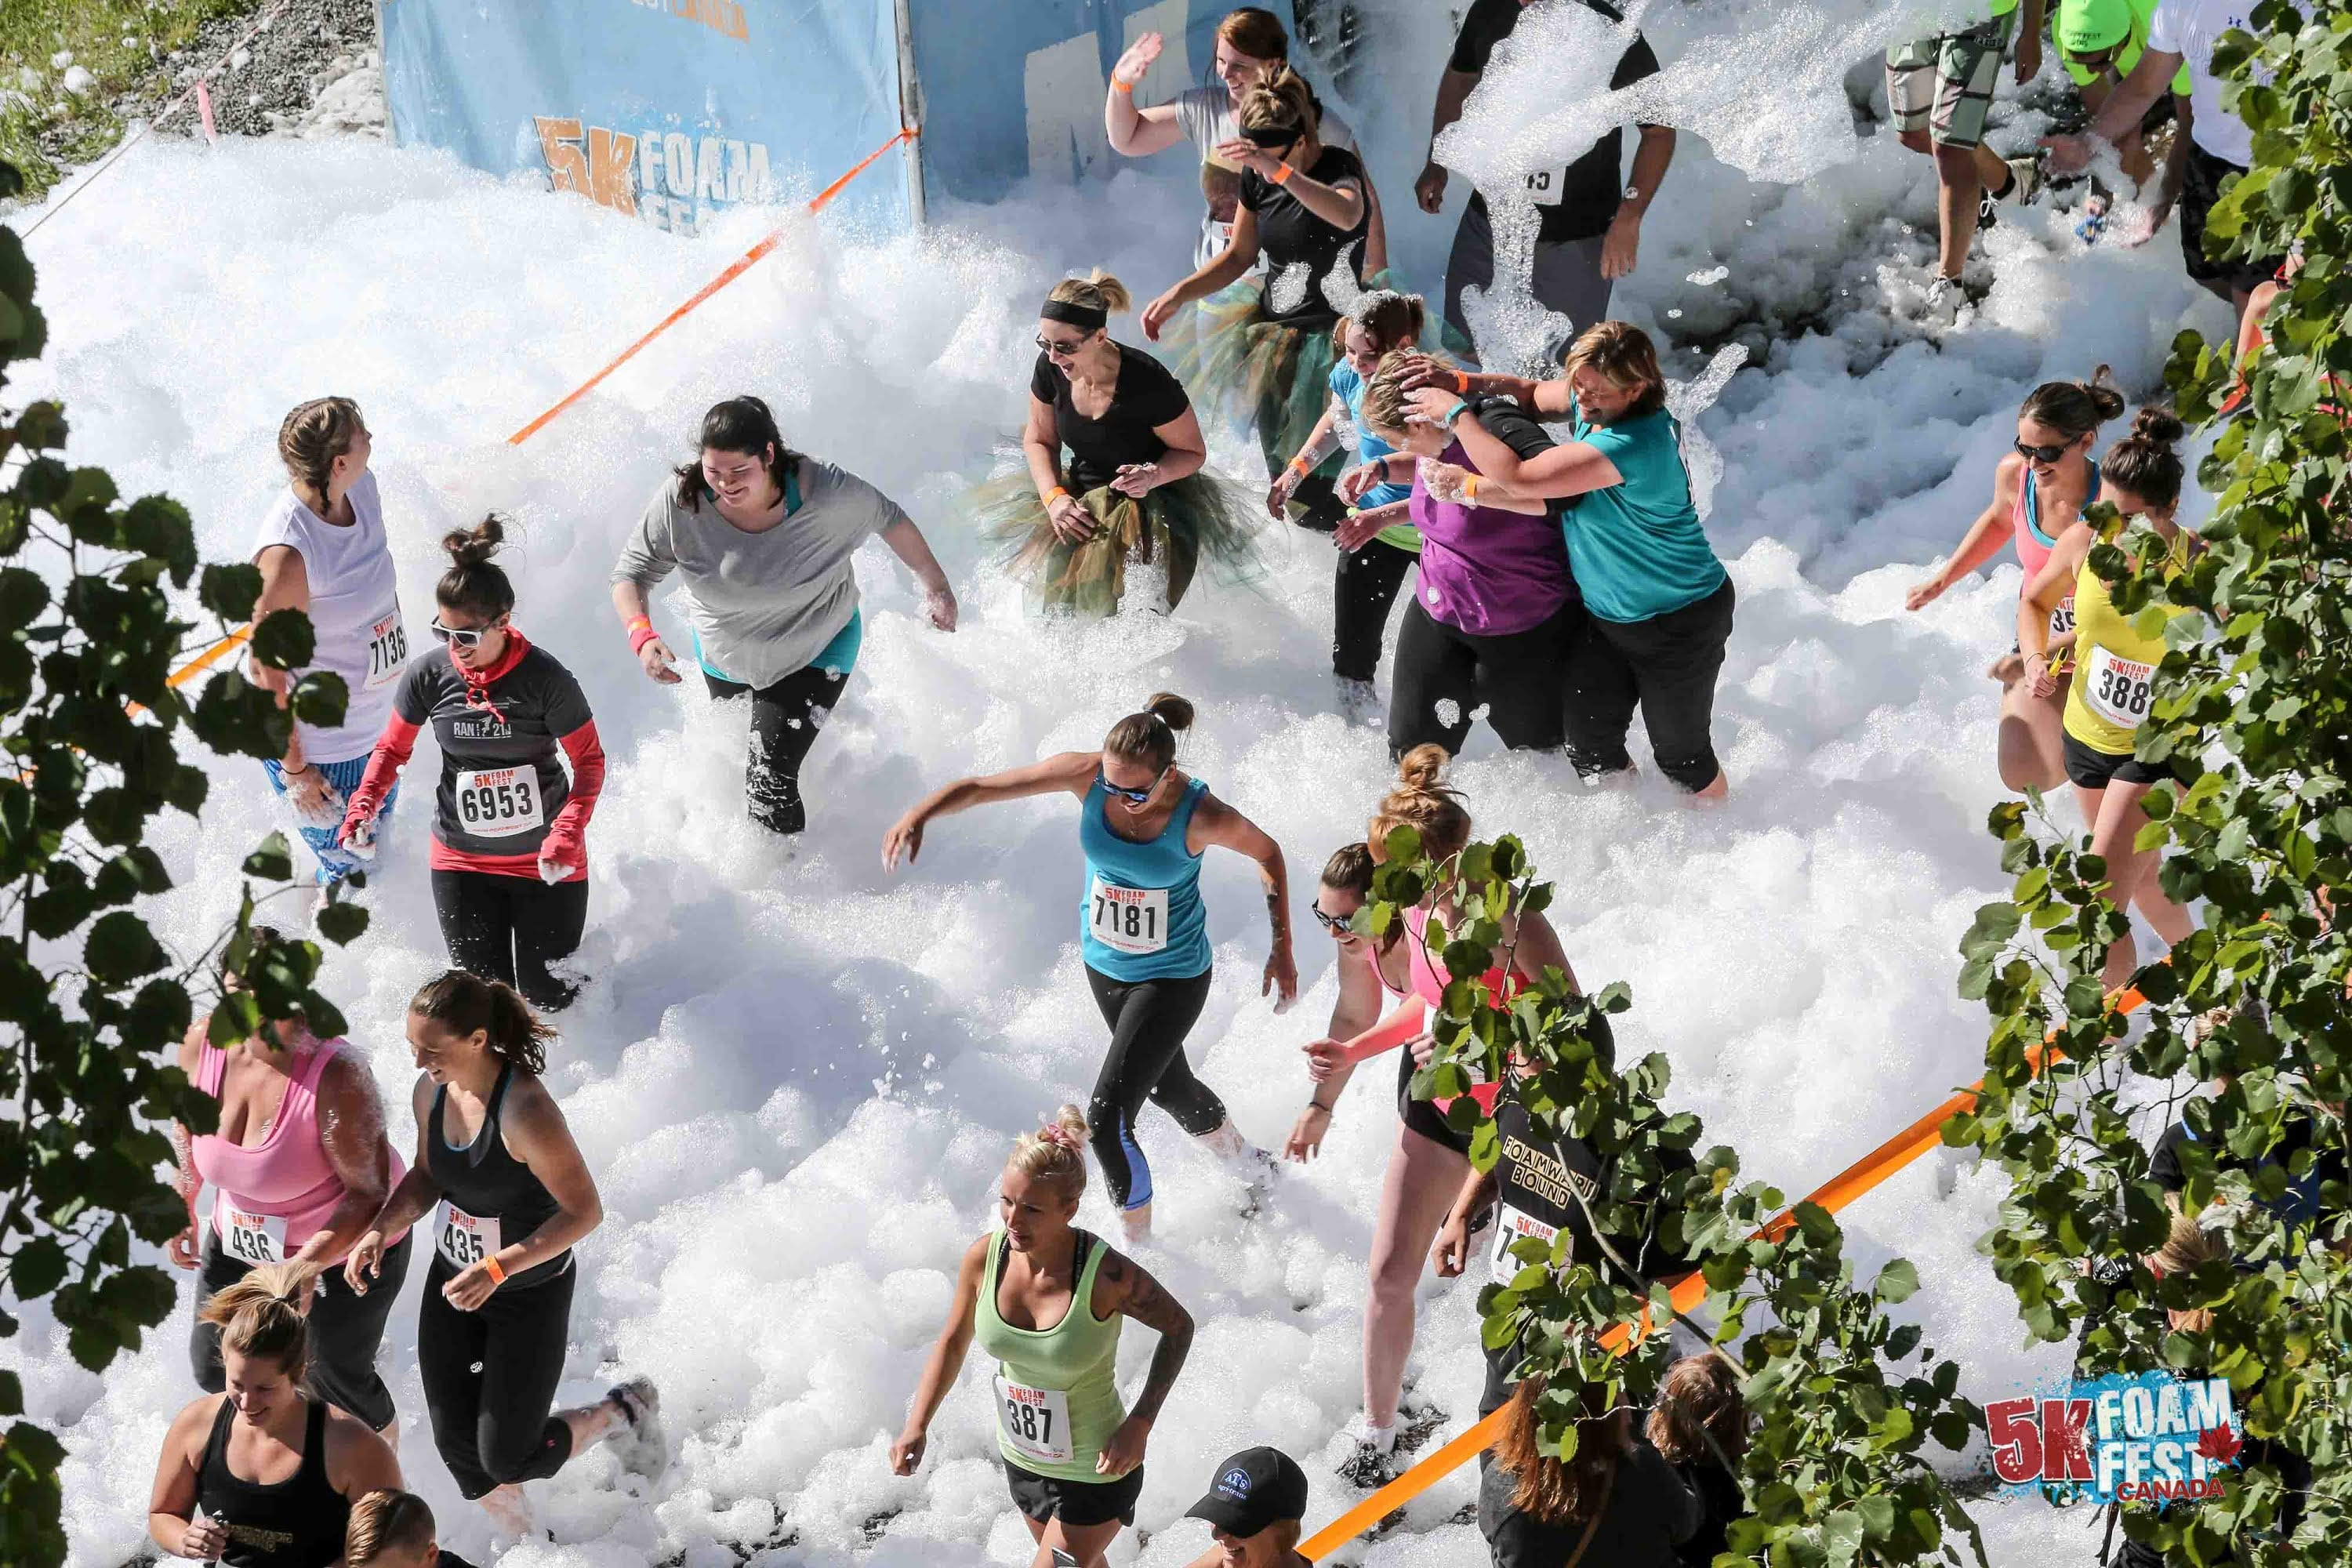 5K Foam Festival at the Abbotsford Exhibition Park